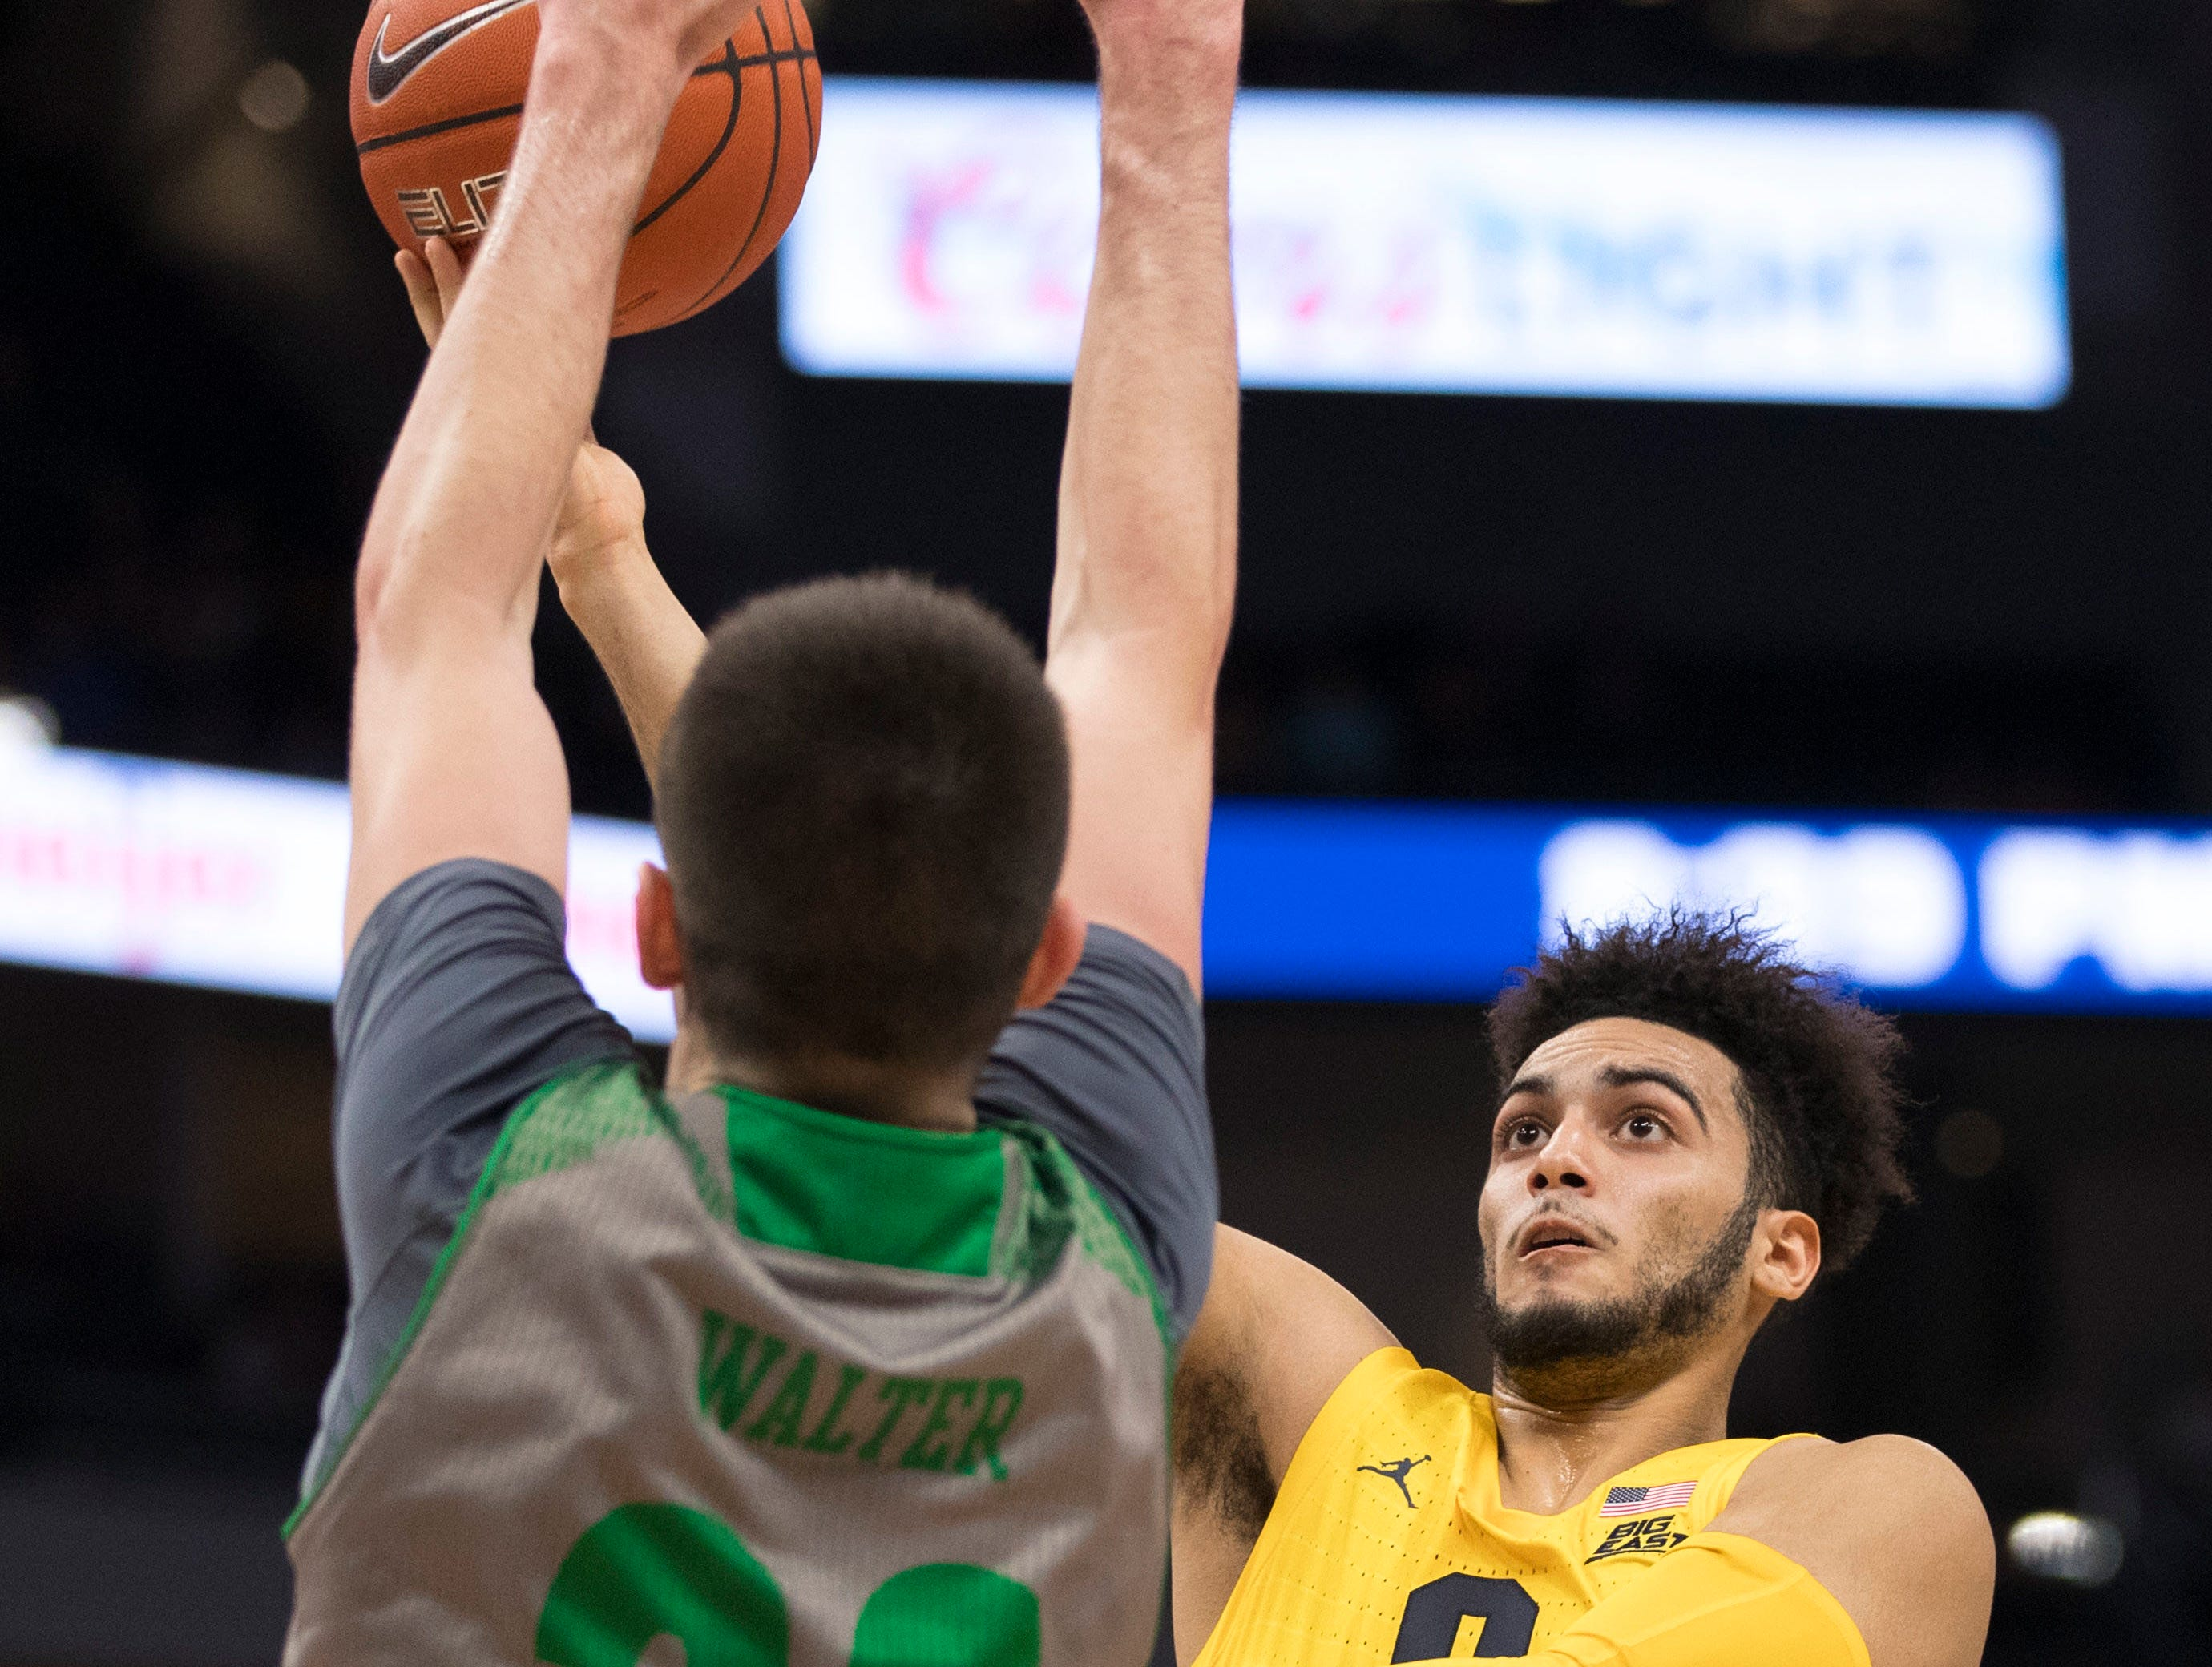 Markus Howard of Marquette gets in the lane for a shot against North Dakota's Kienan Walter on Tuesday night.